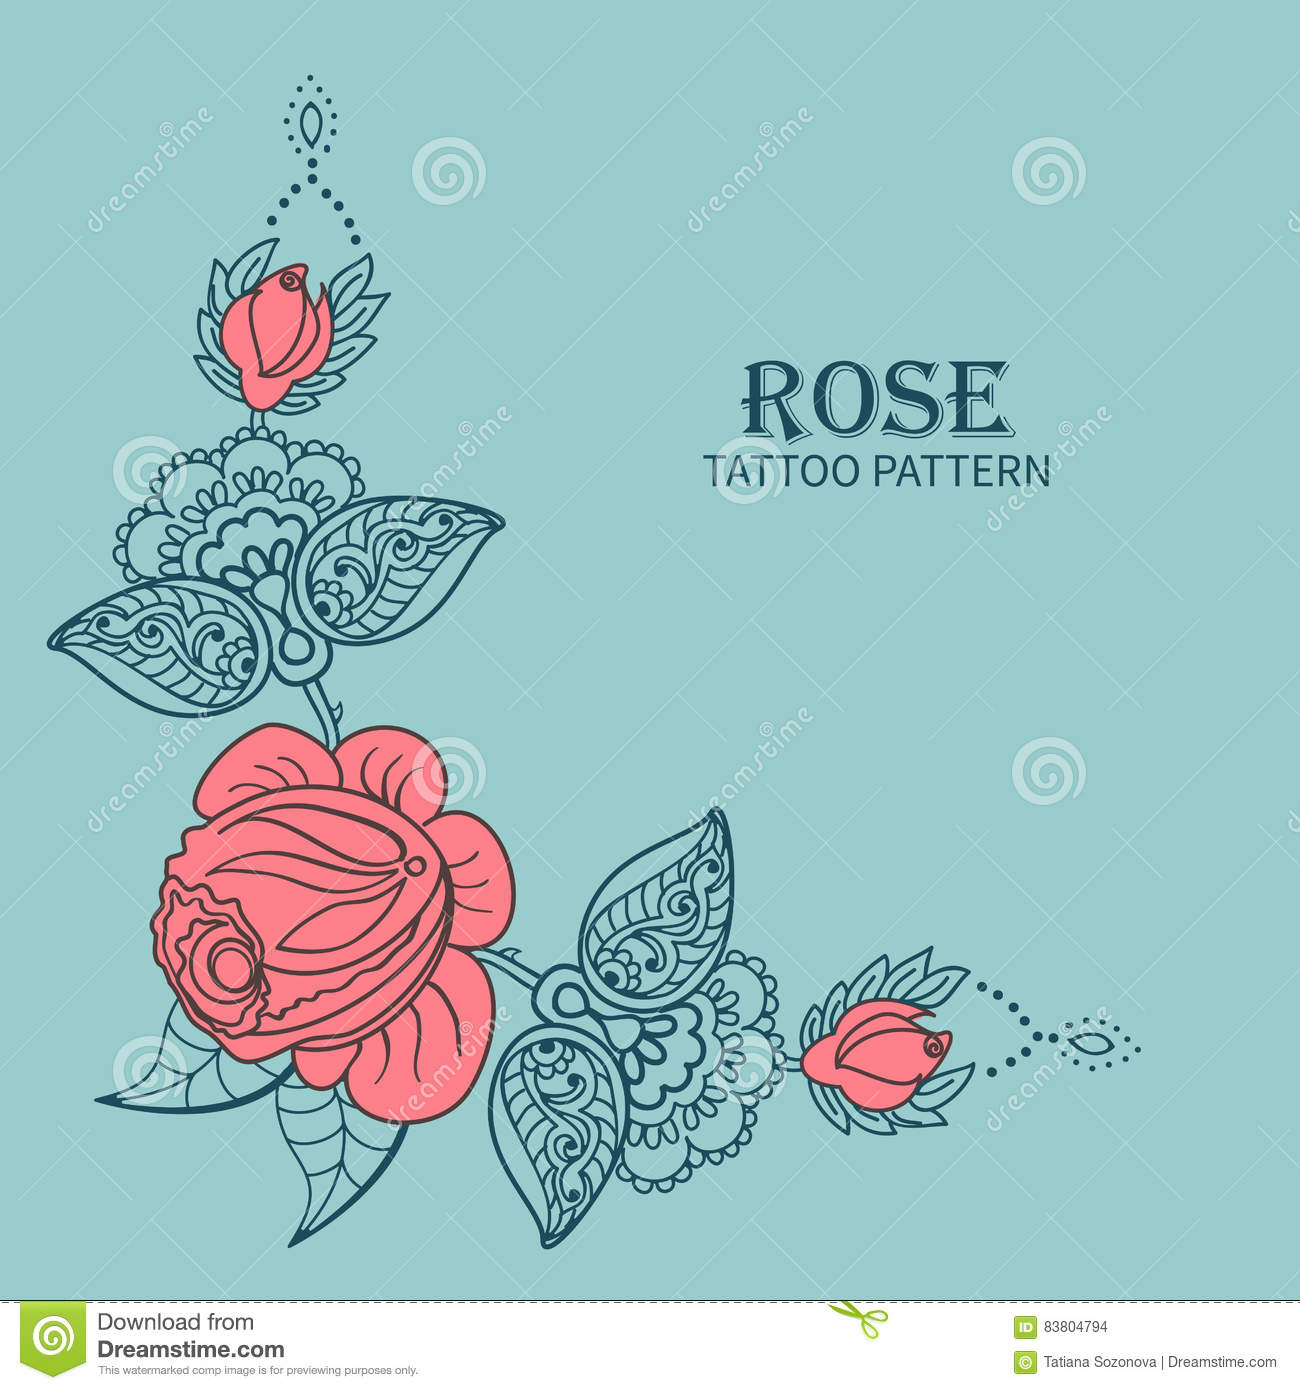 Rose Tattoo Pattern Stock Vector Illustration Of Corner 83804794